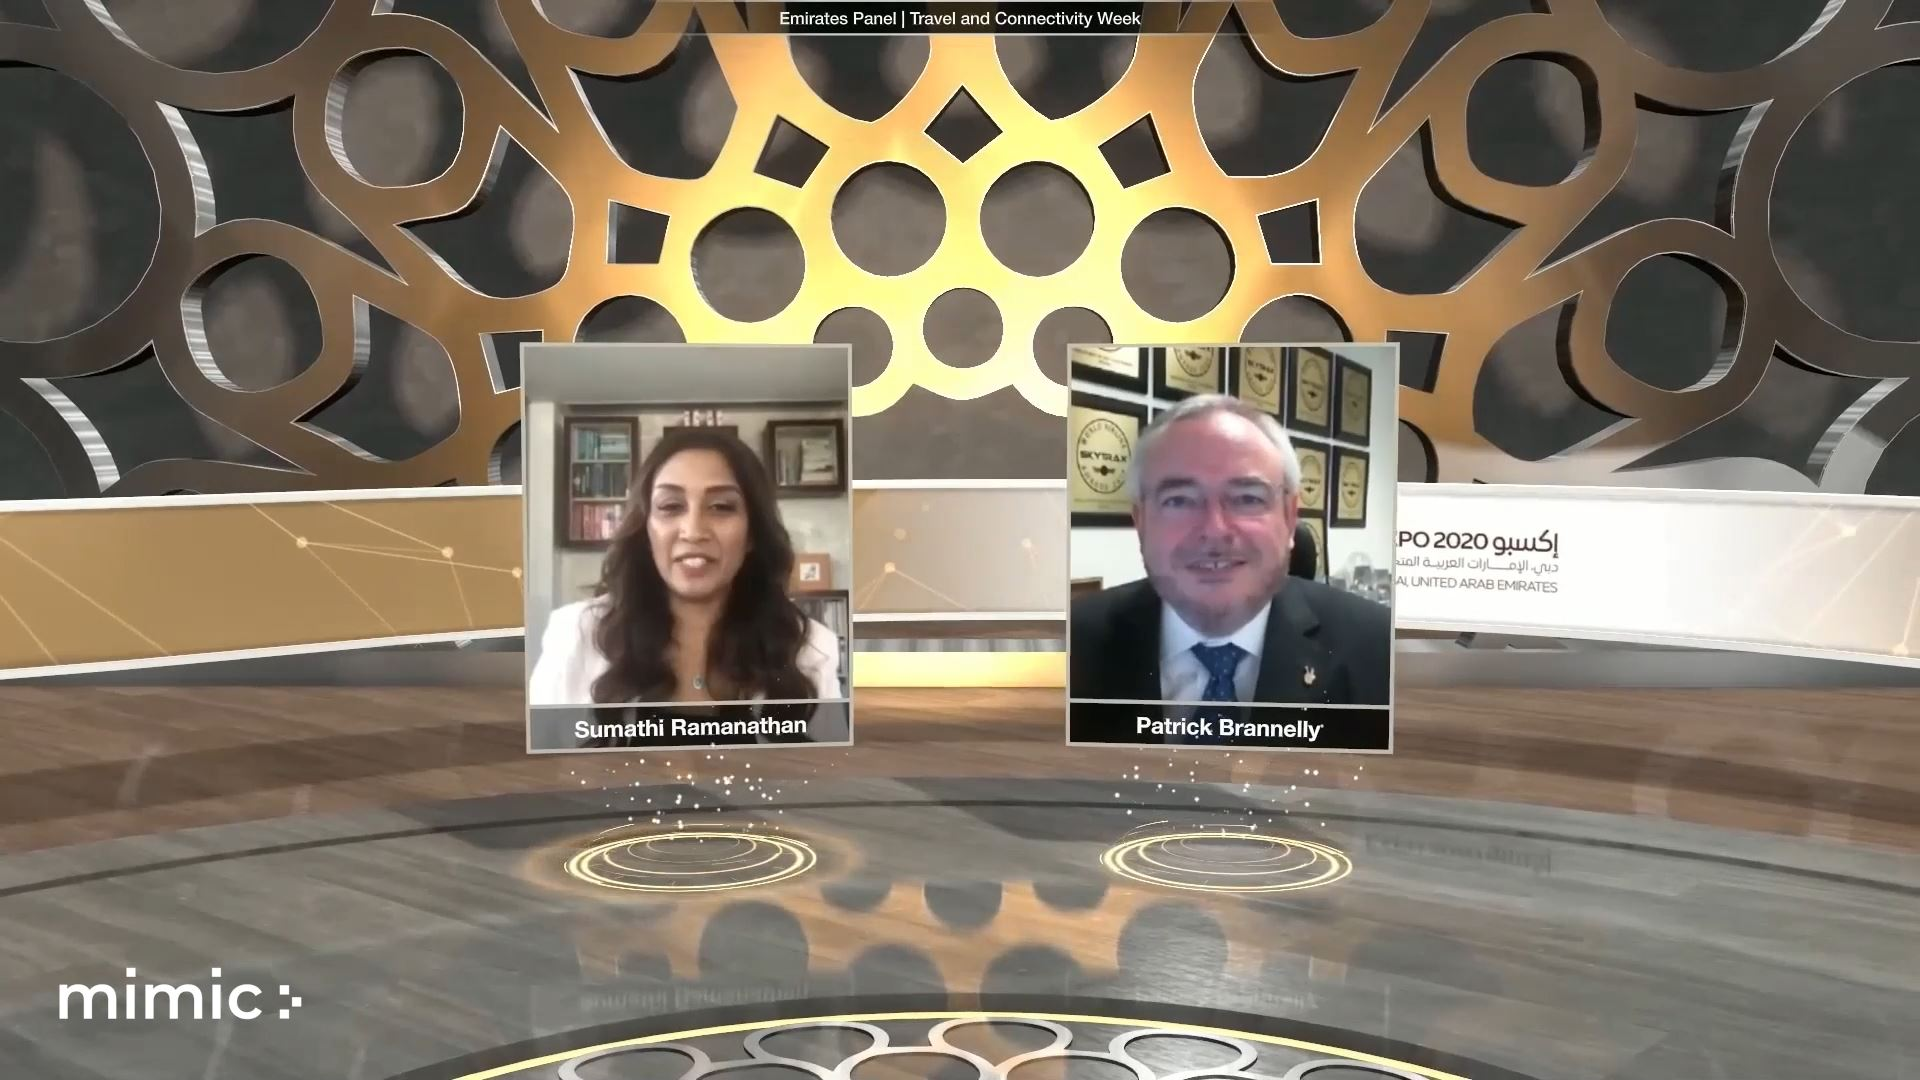 expo 2020 travel and connectivity week virtual event two speakers